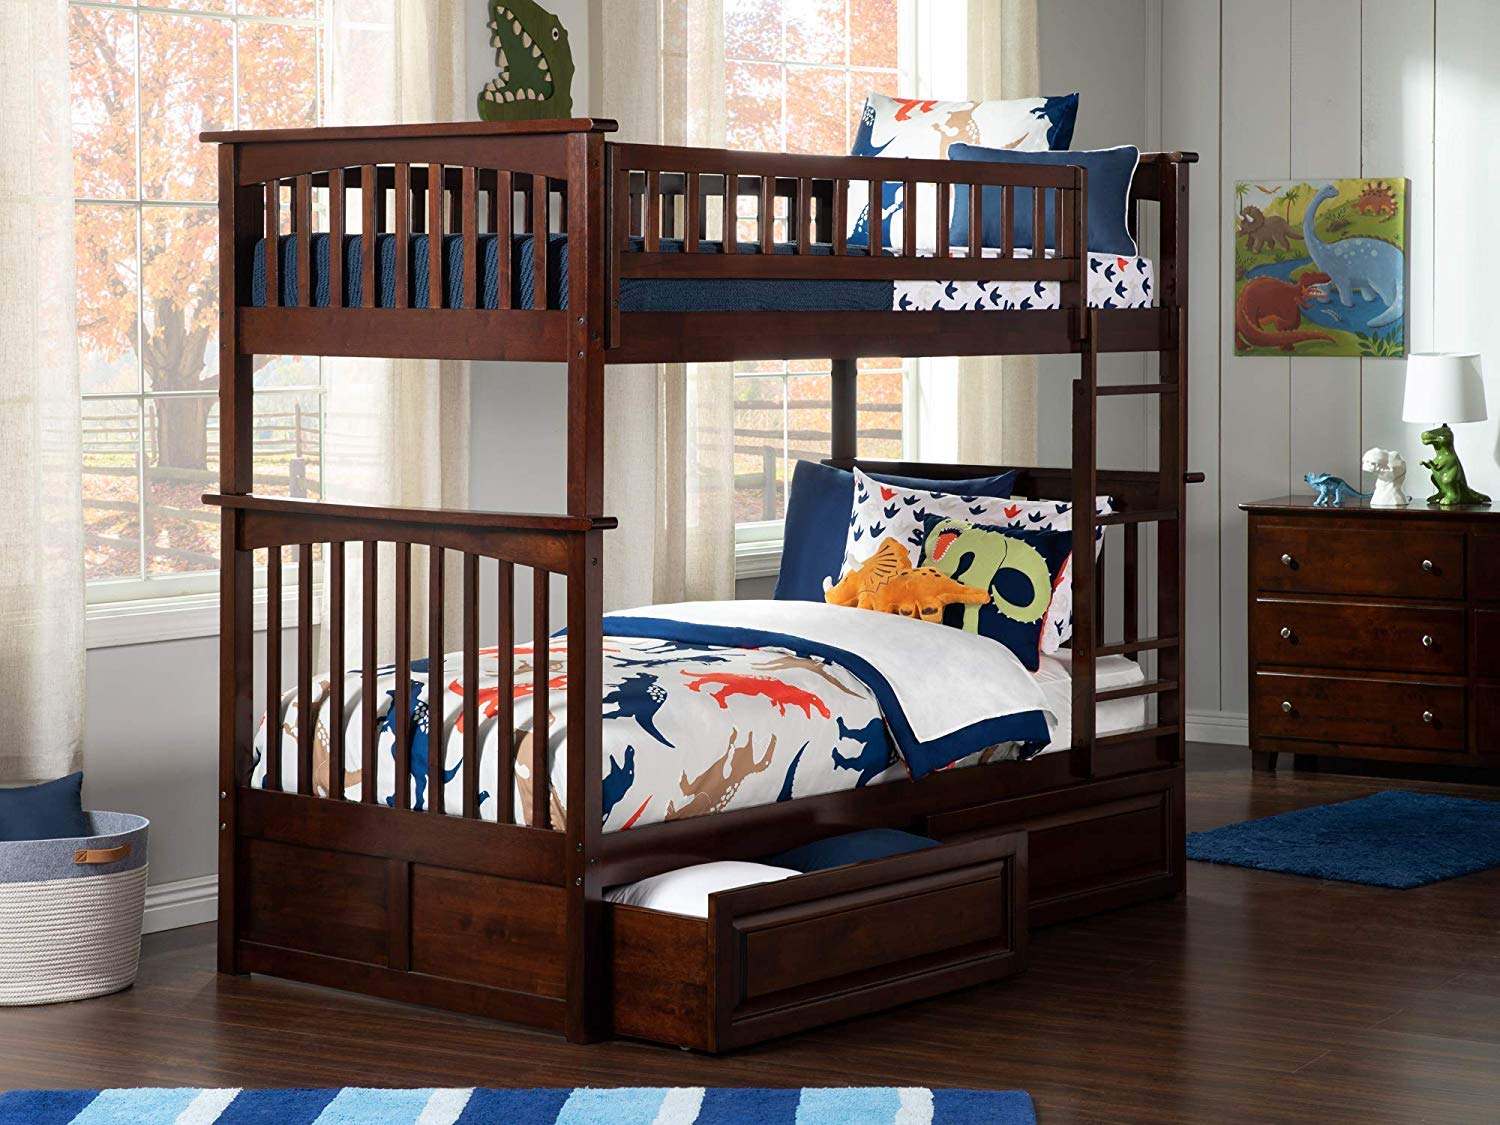 Atlantic Furniture AB55124 Columbia Bunk Bed with 2 Raised Panel Bed Drawers, Twin Twin, Walnut